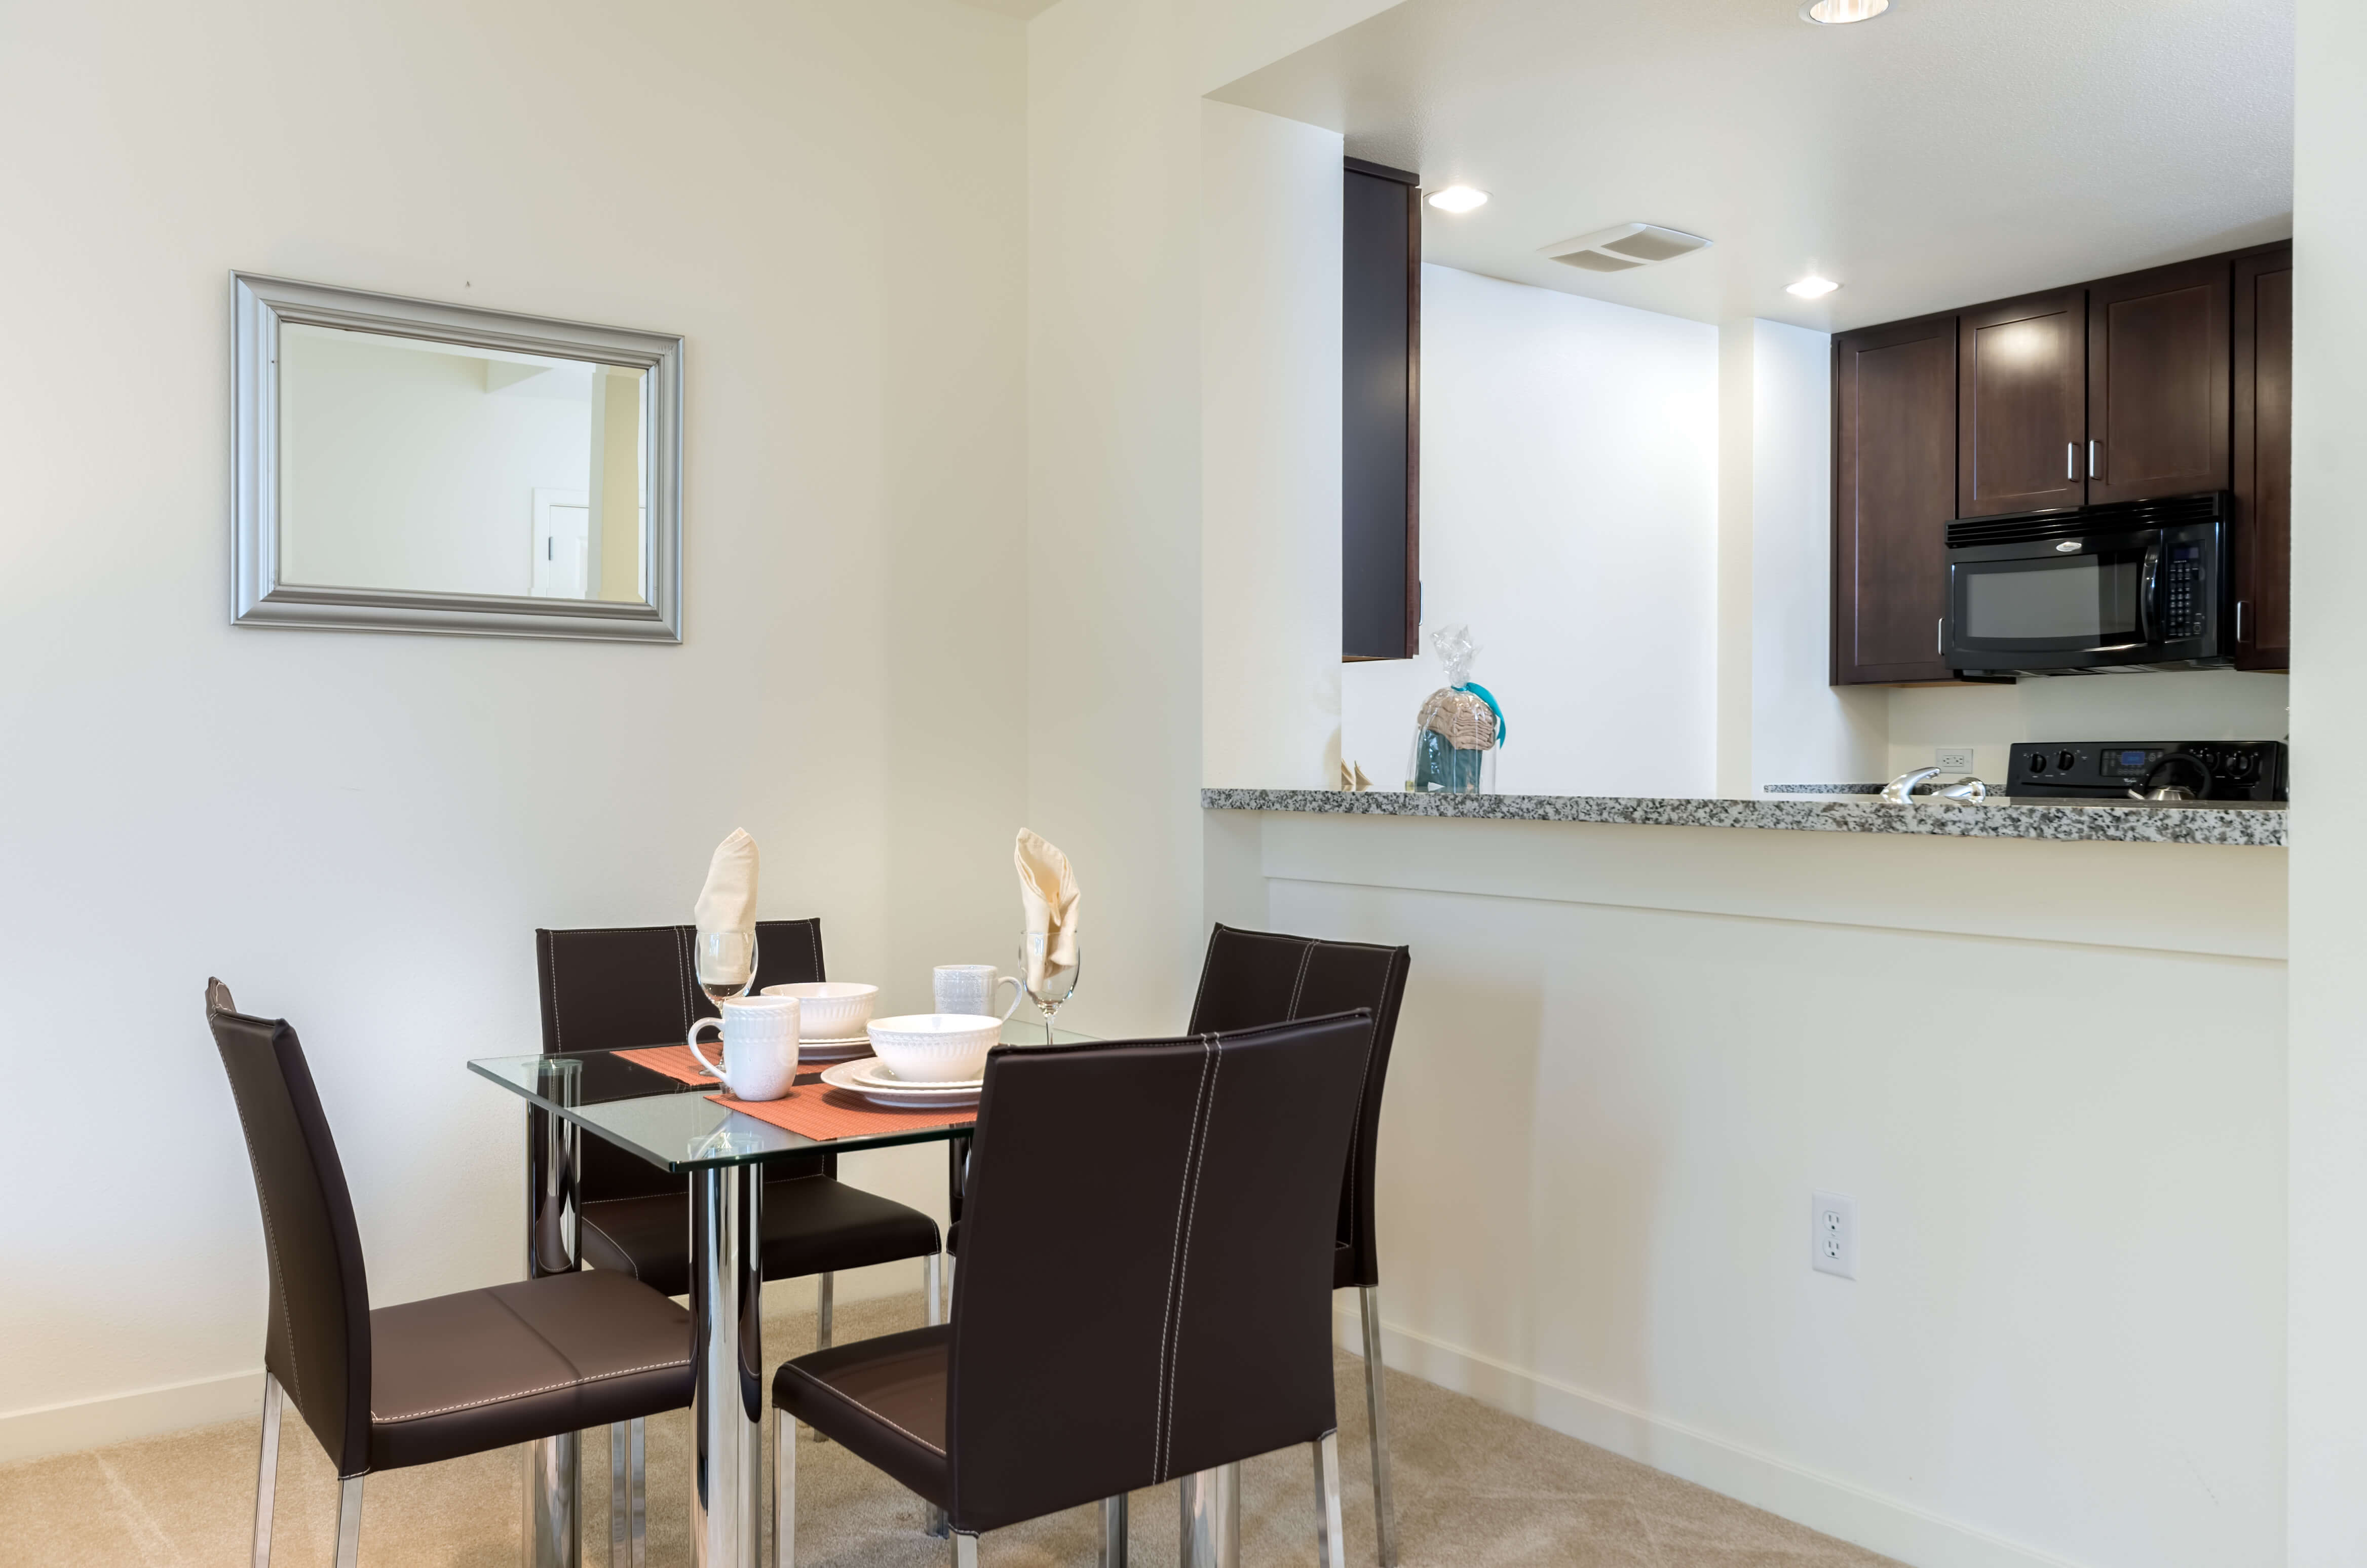 Mission District Furnished 1 Bedroom Apartment For Rent 7680 Per Month Rental Id 3161847